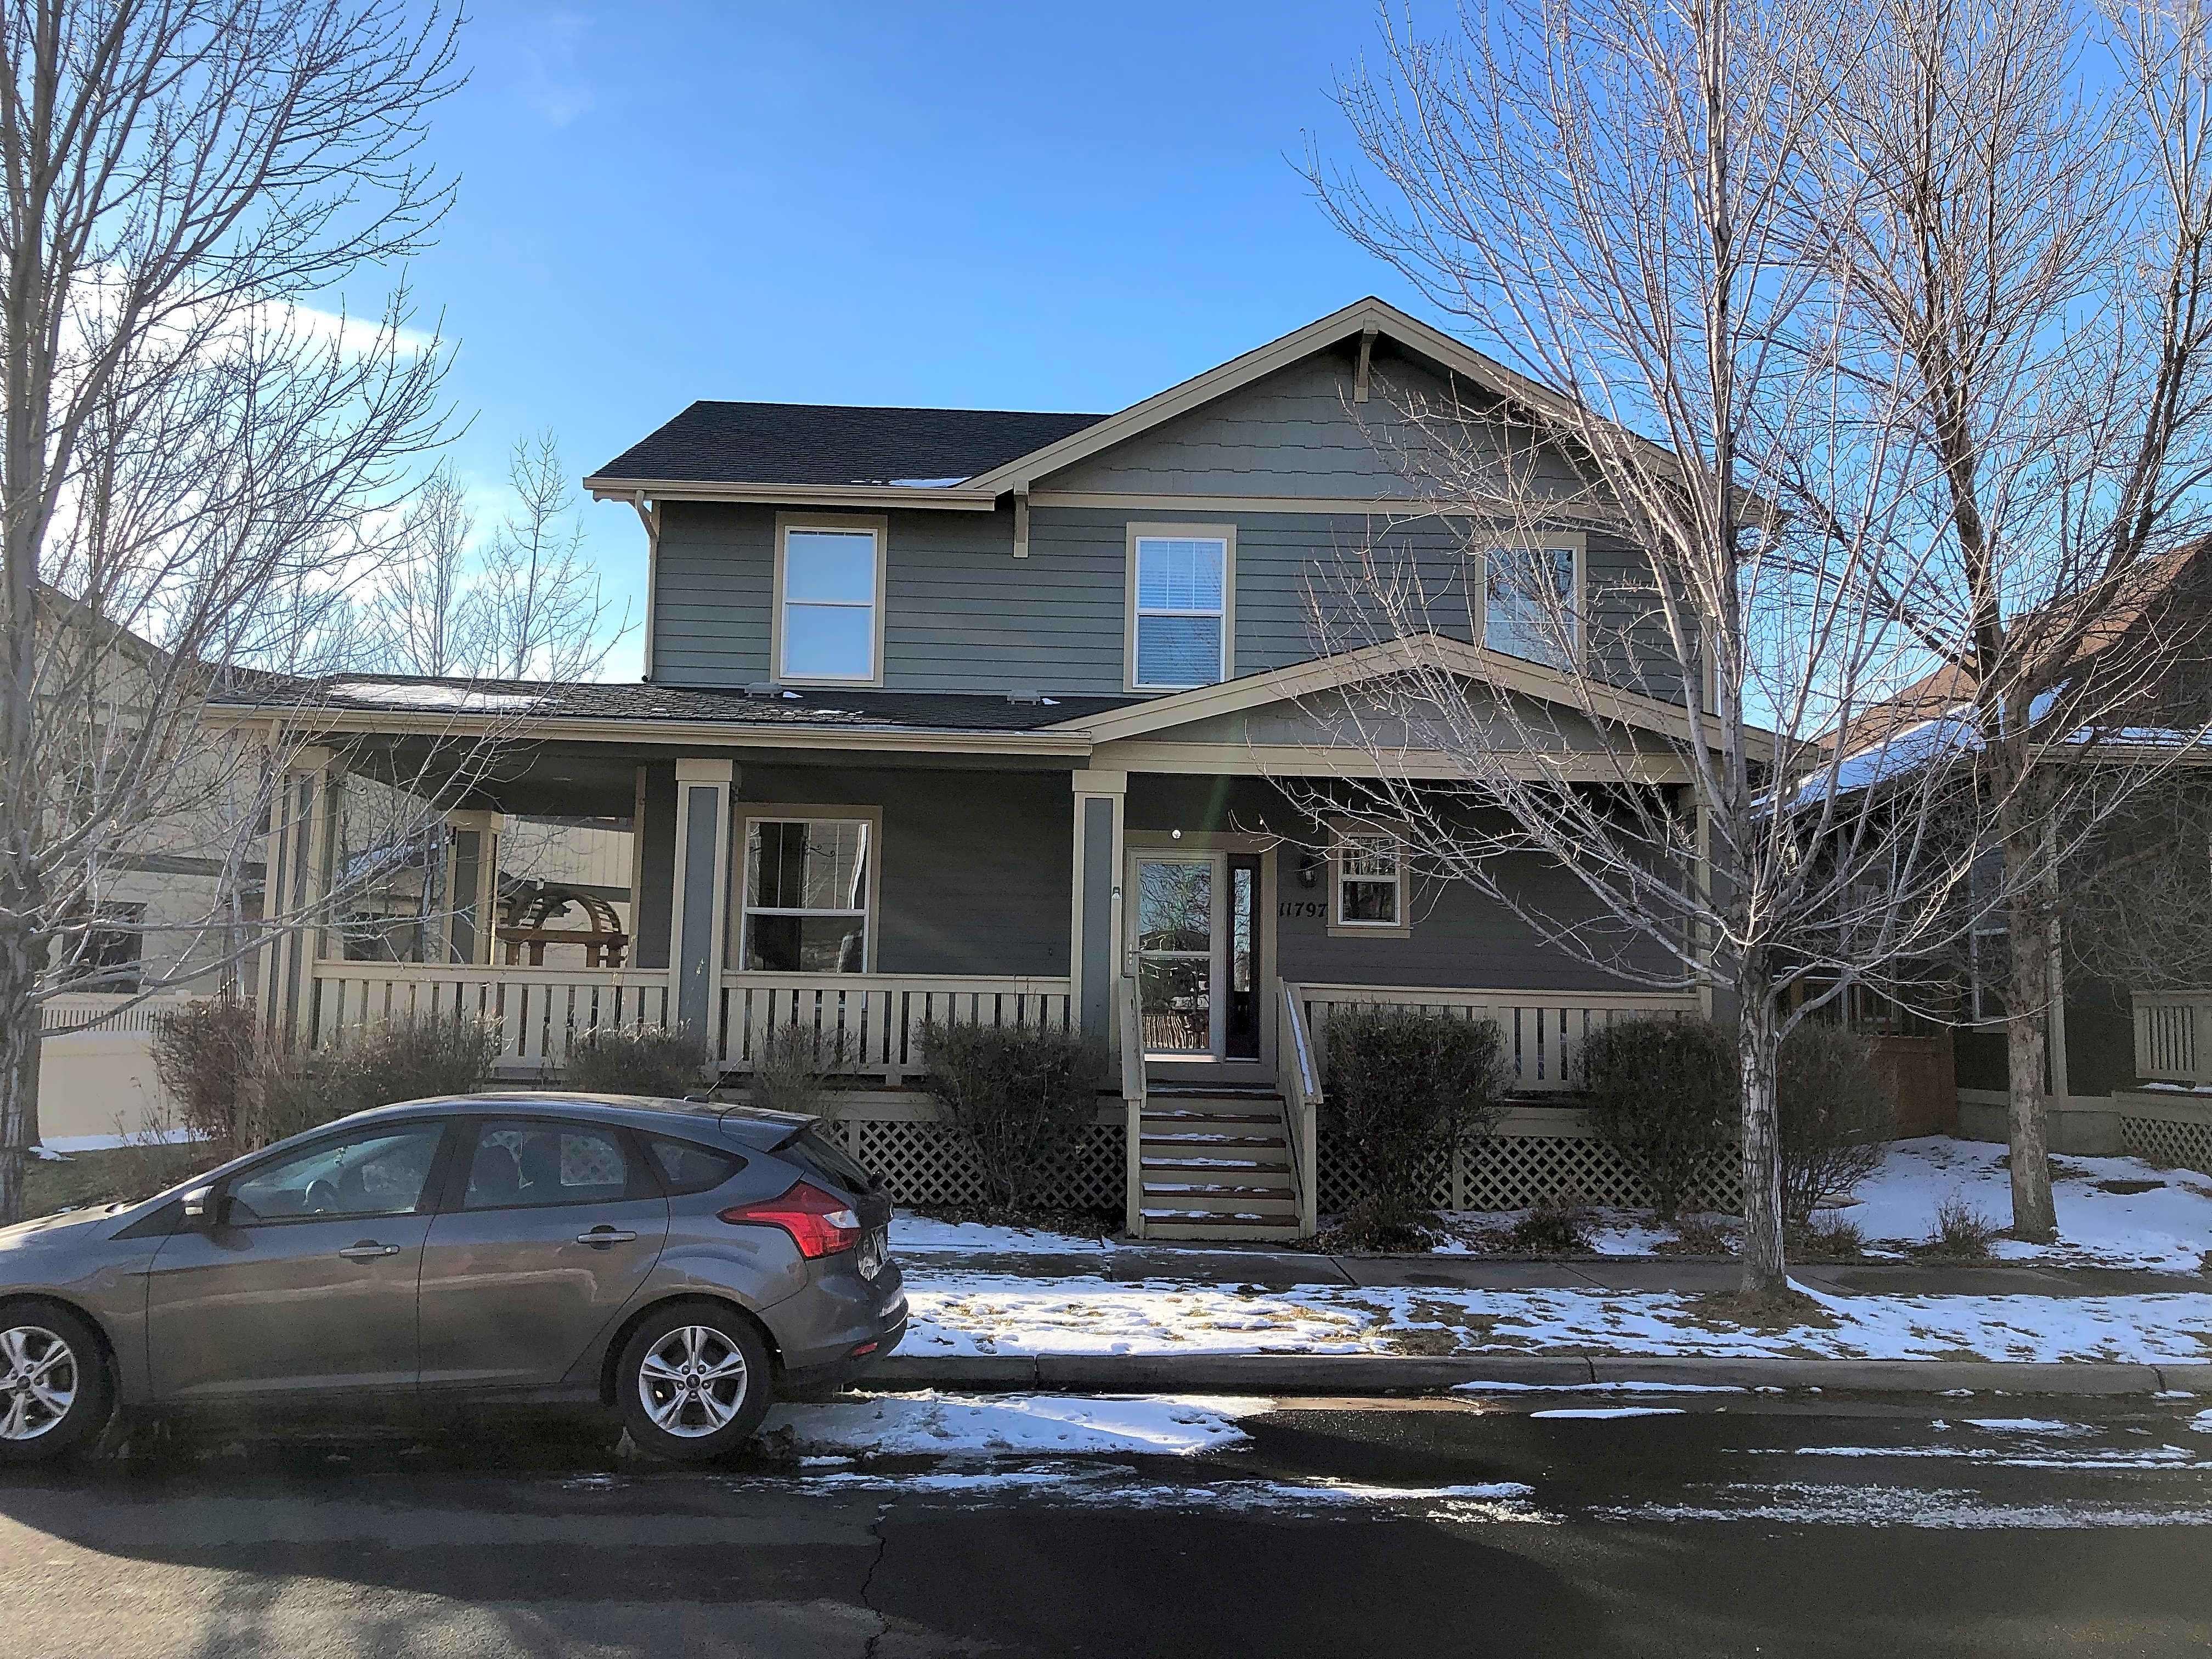 houses for rent in denver co rentals com rh rentals com